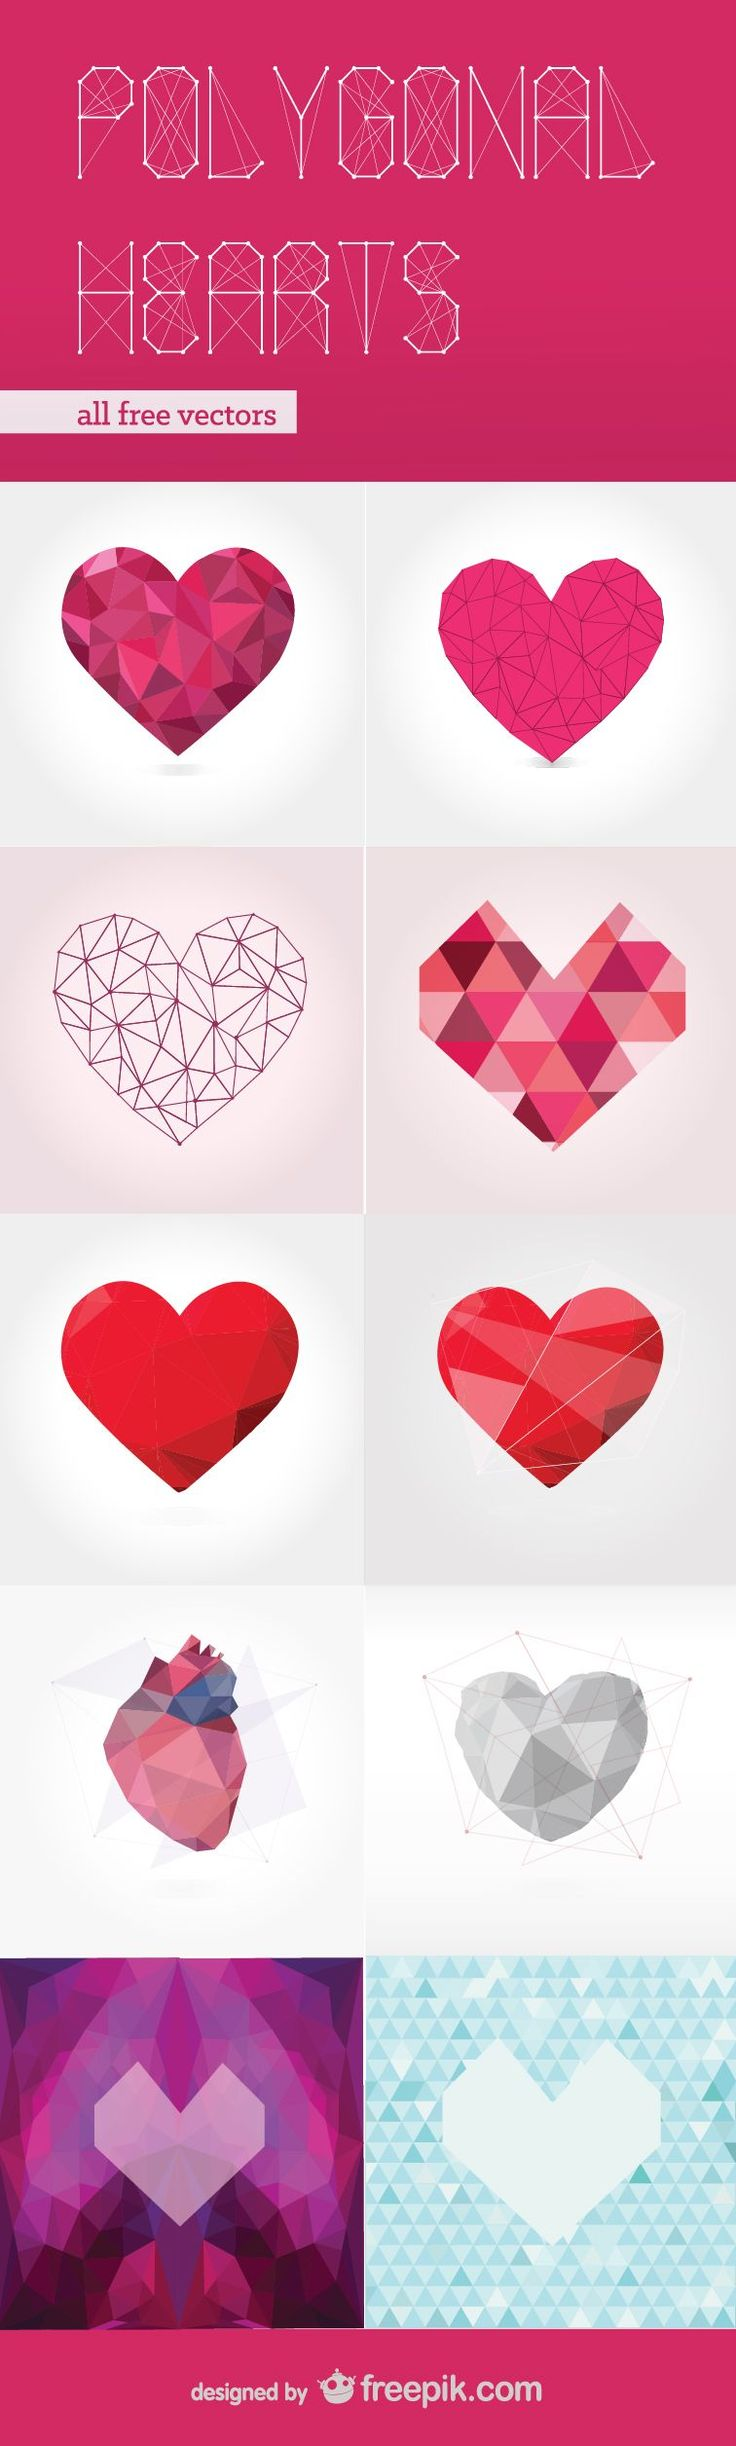 Polygonal Hearts Free Vector Pack